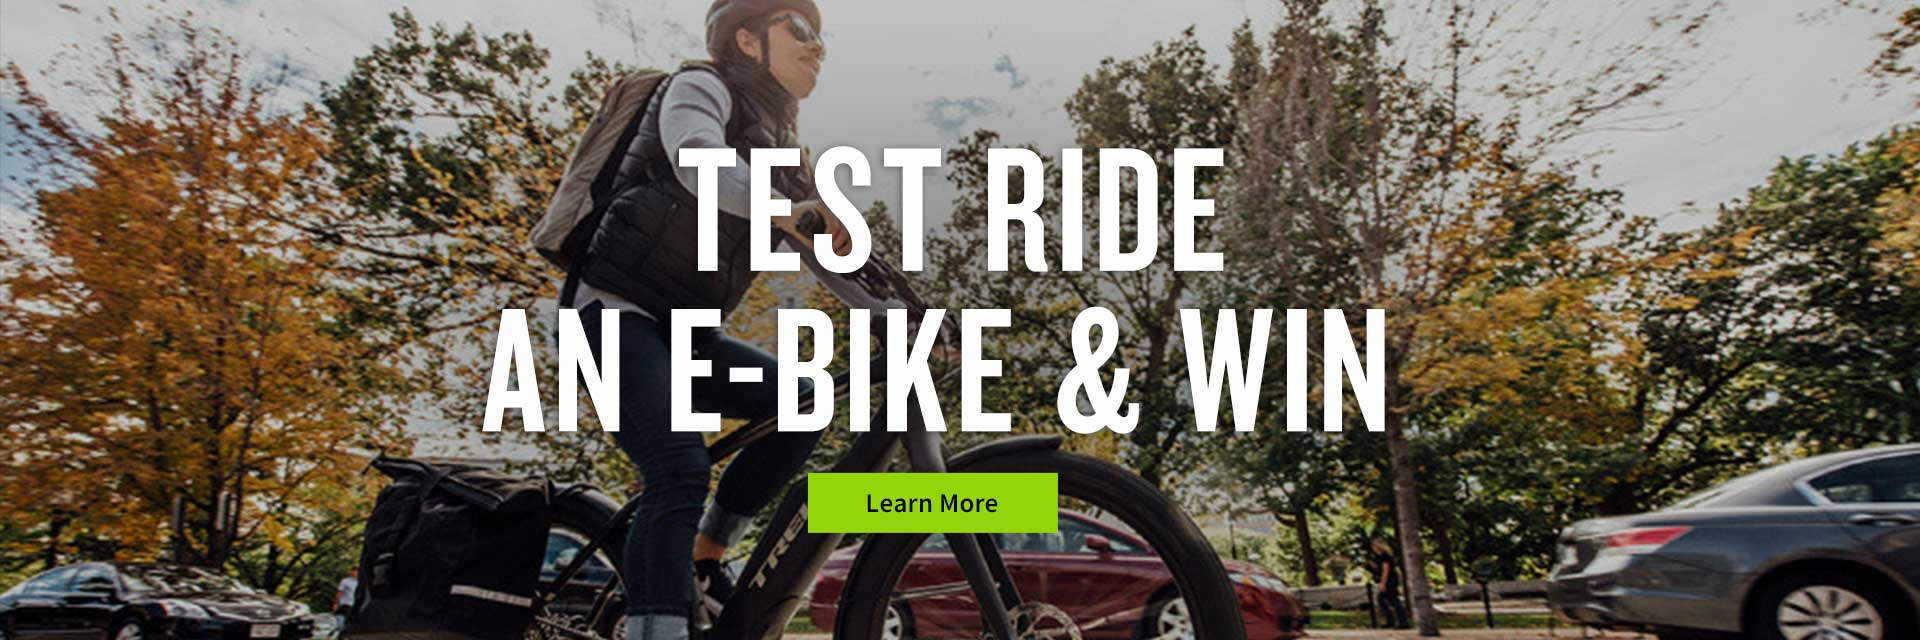 Test Ride An E-Bike & Win